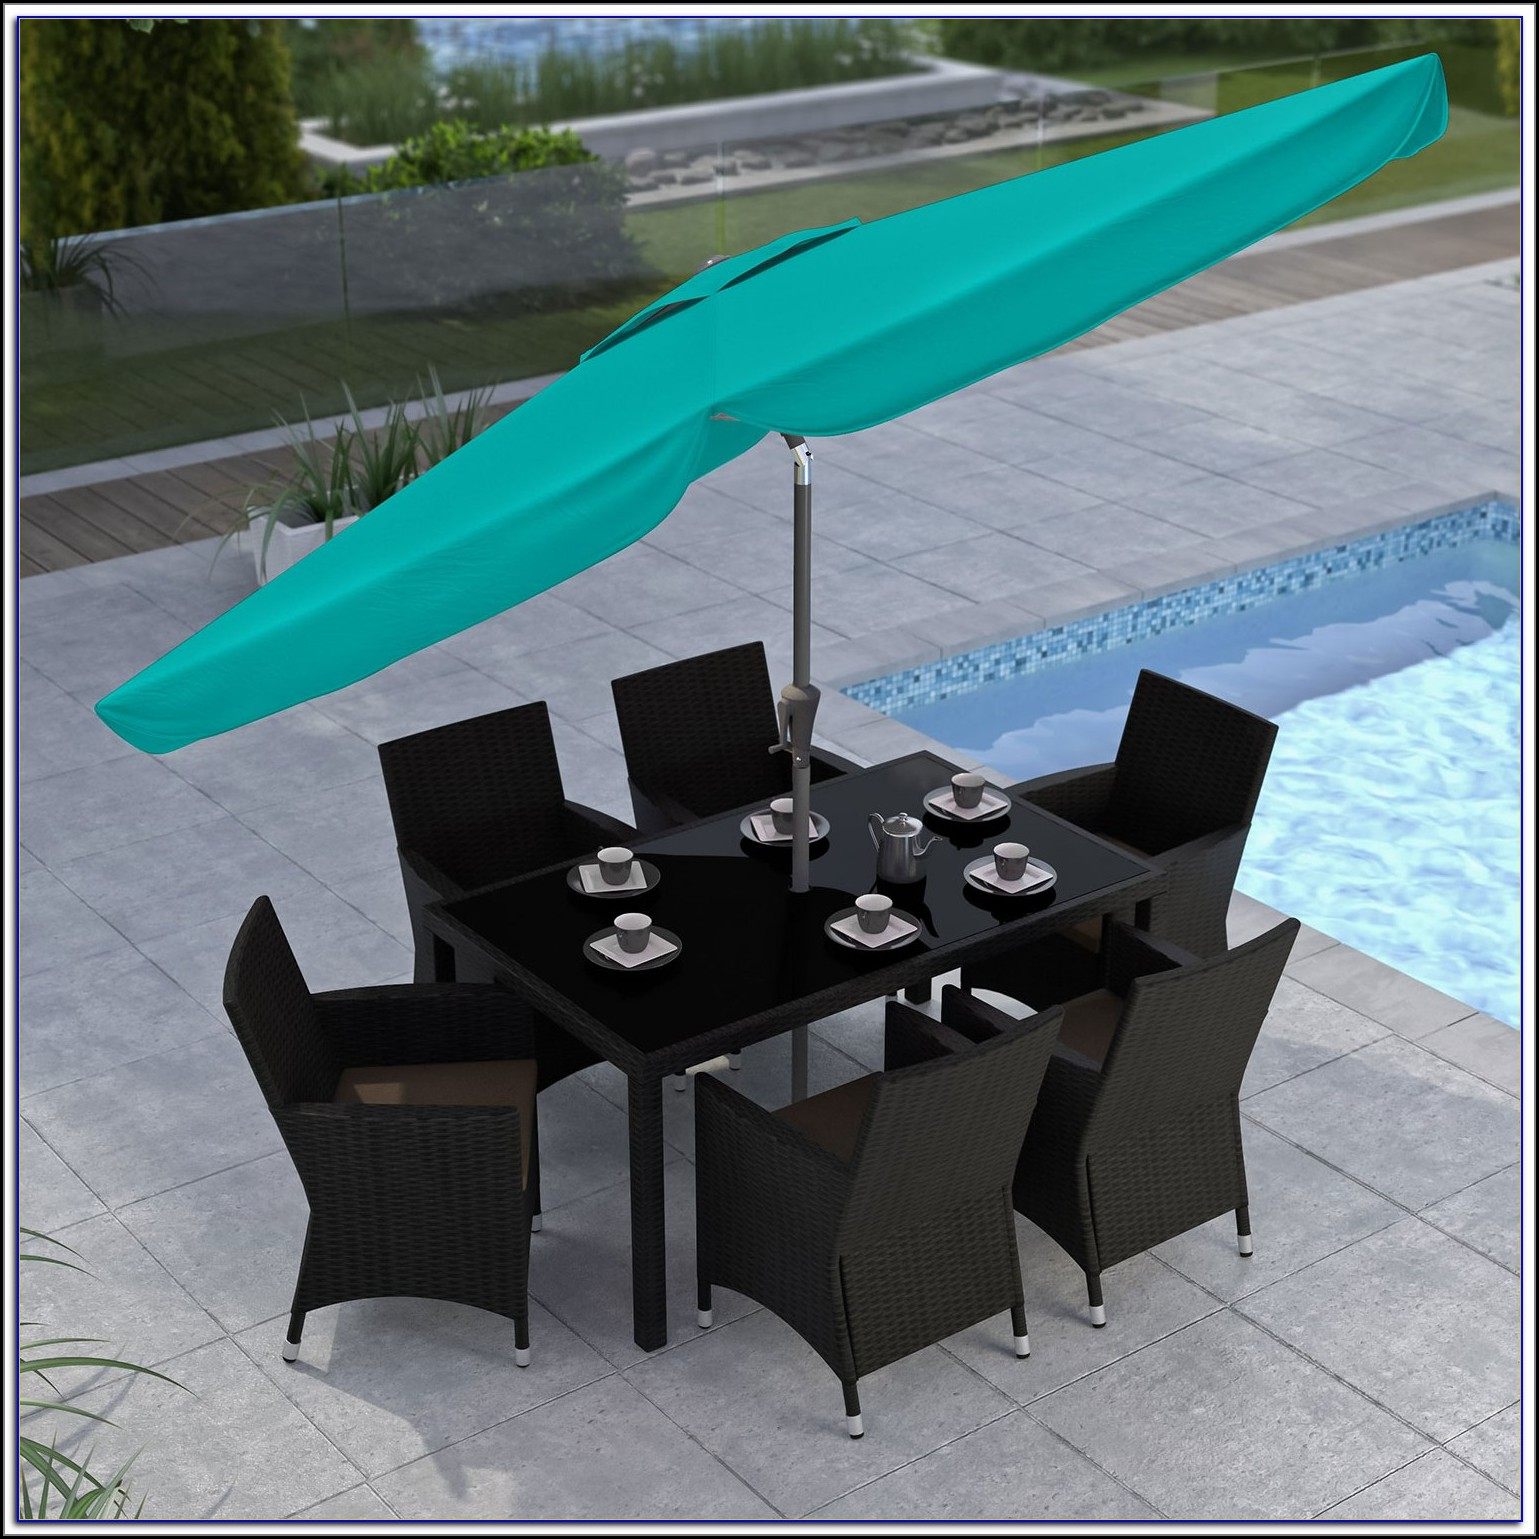 Turquoise 9 Patio Umbrella